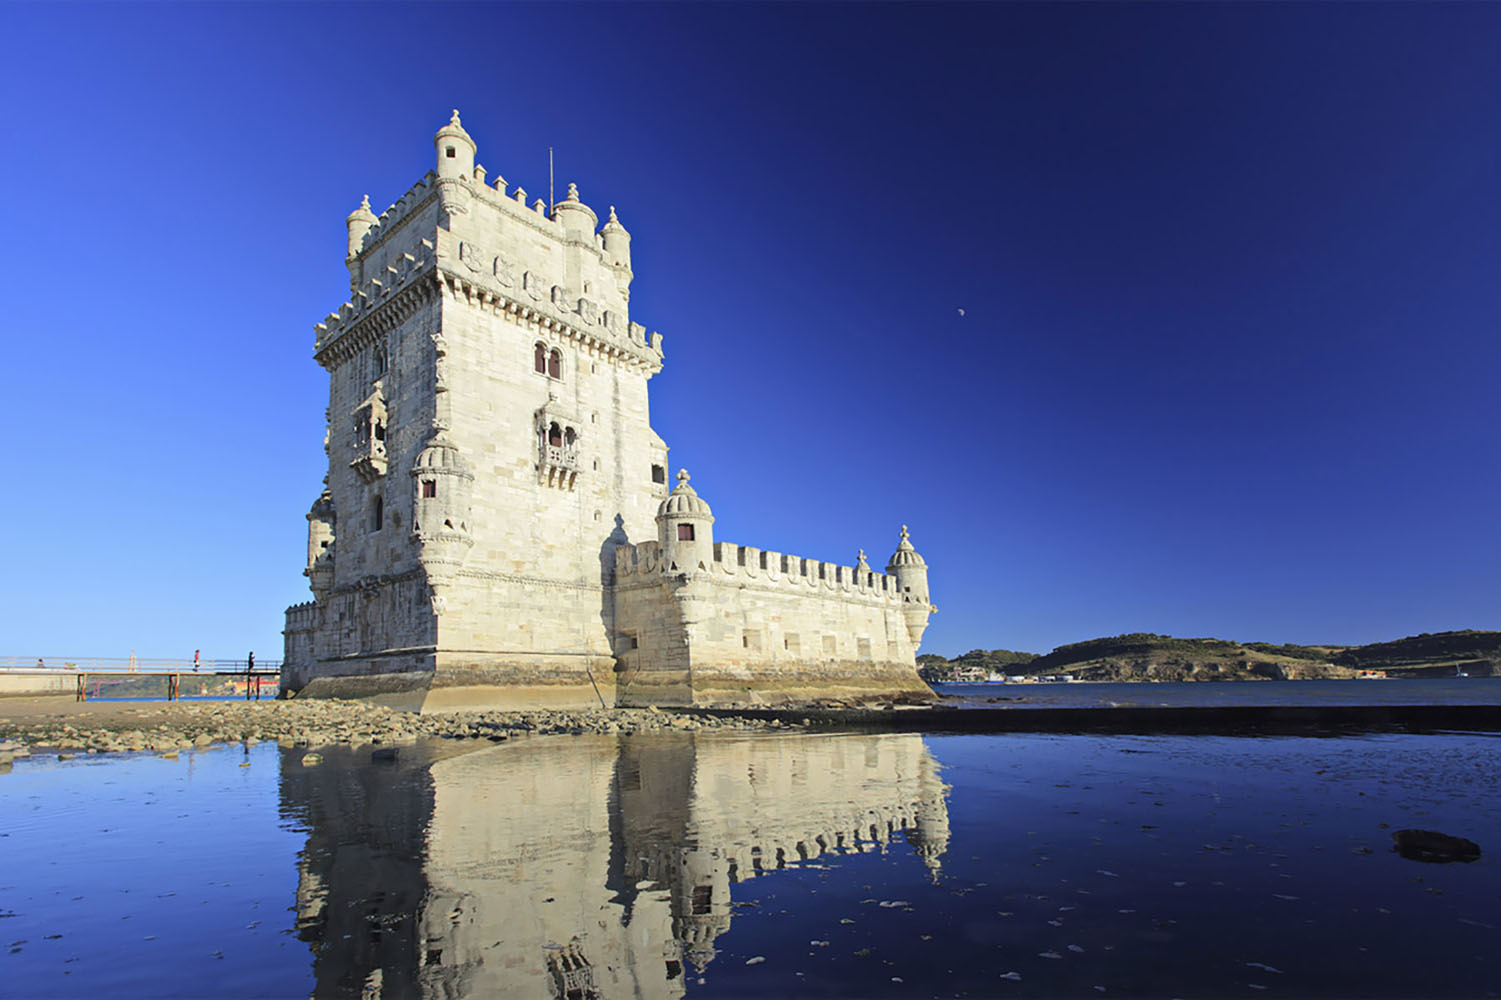 Belém is a district in Lisbon located at the mouth of the Rio Tejo and a must-see!